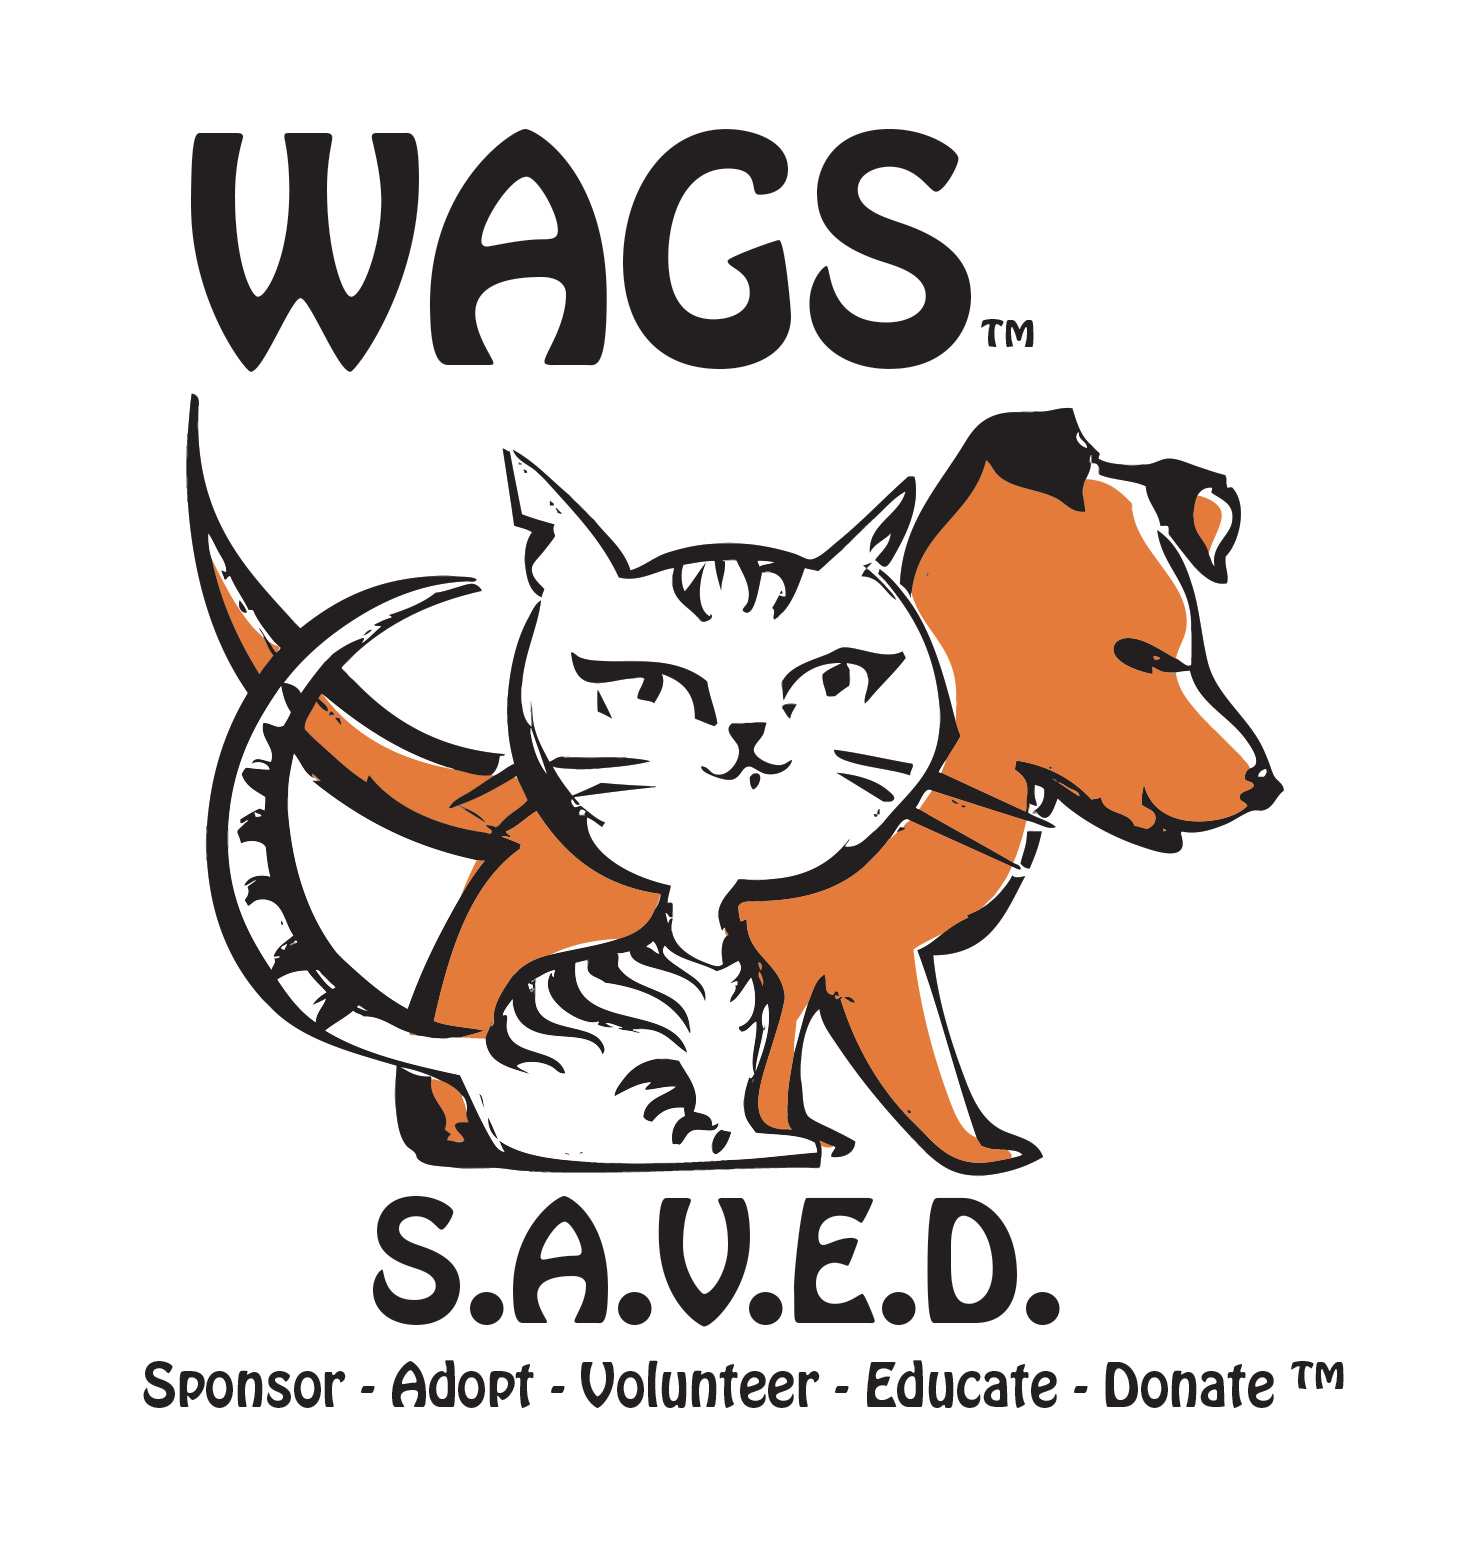 WAGS ~ Westminster Adoption Group and Services